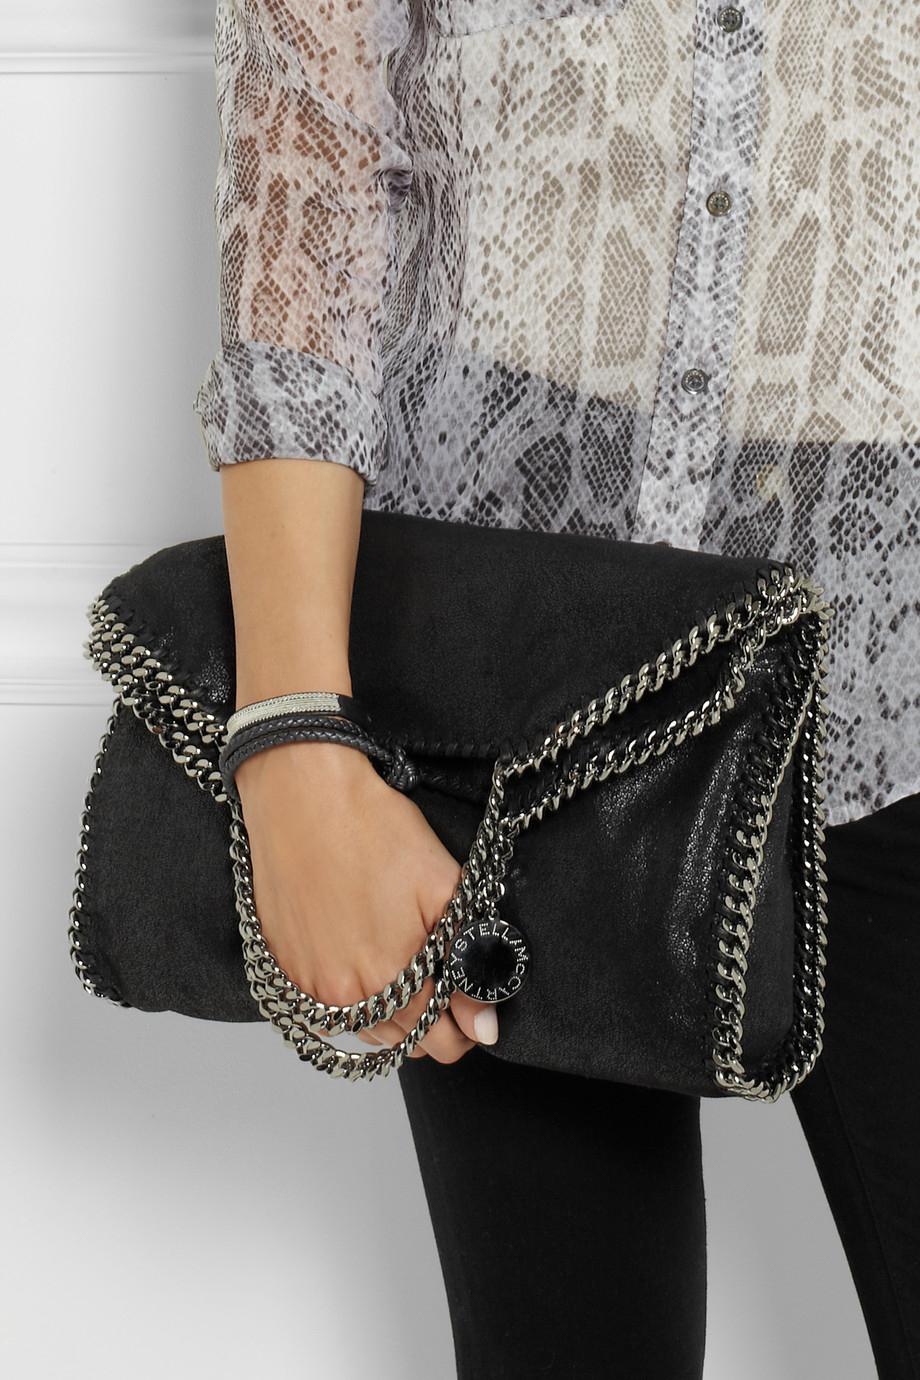 Lyst - Stella McCartney The Falabella Faux Brushed-Leather Shoulder ... 75f969dda4